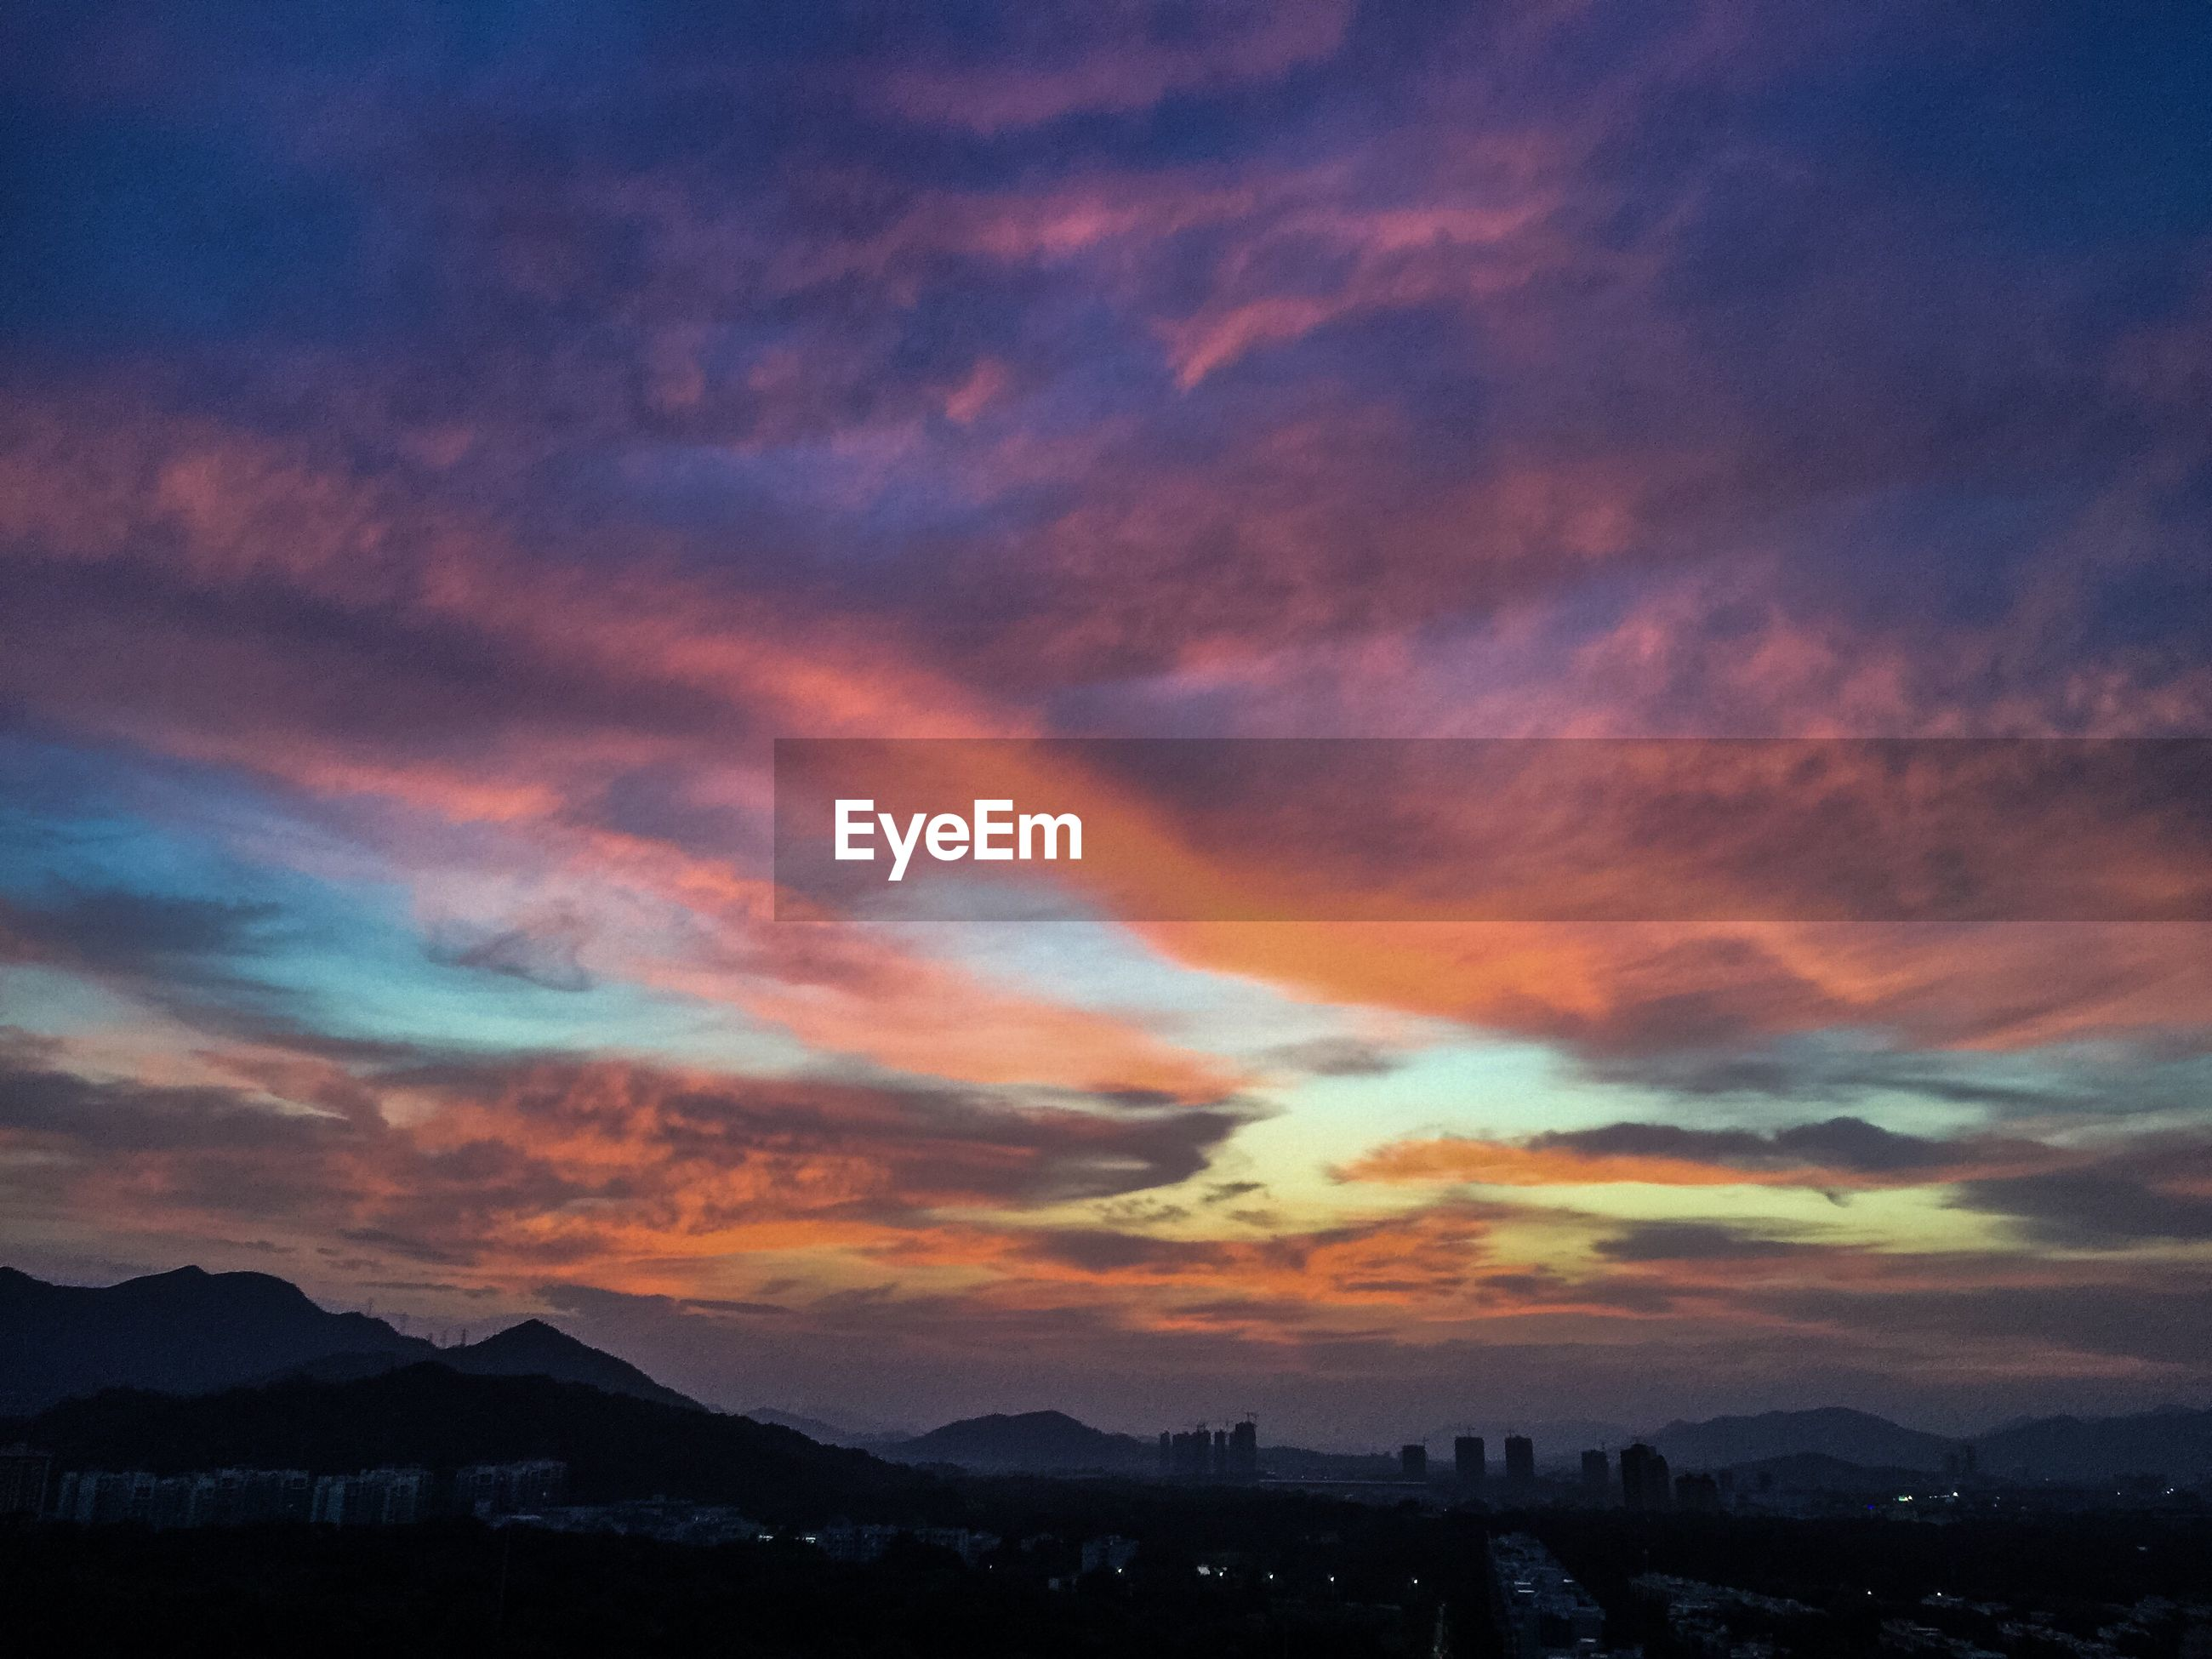 SILHOUETTE OF MOUNTAIN AGAINST SKY DURING SUNSET